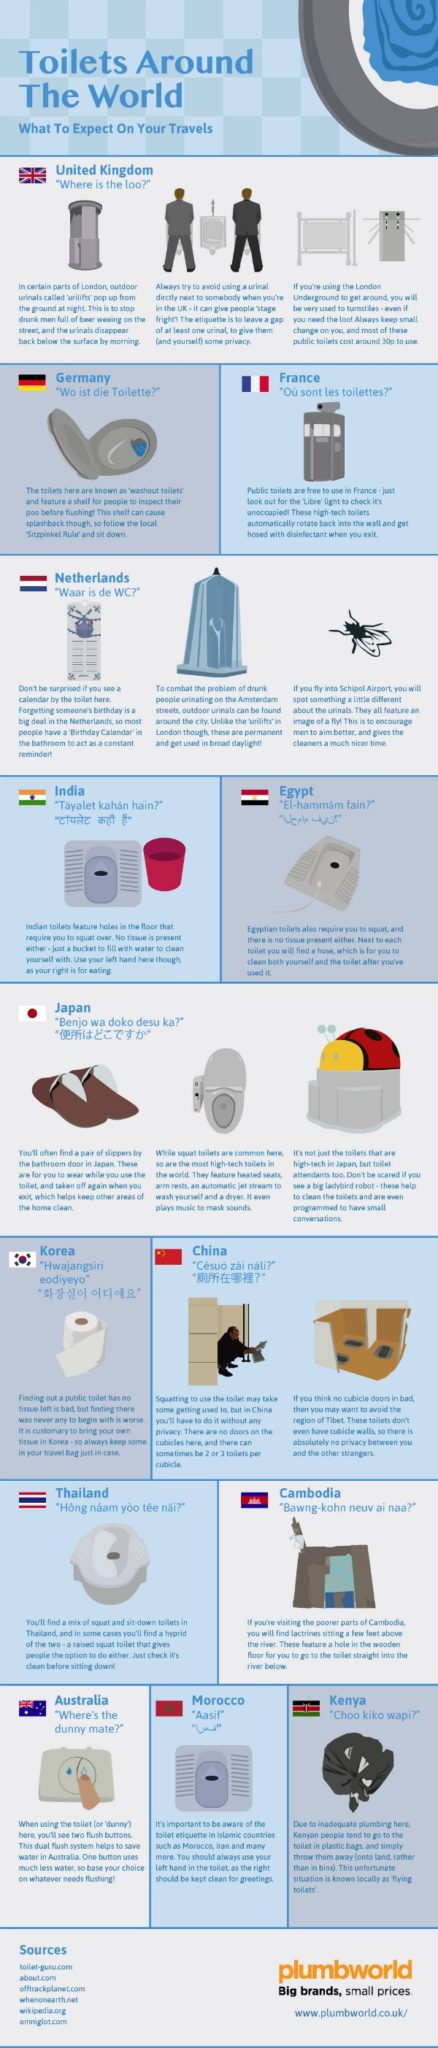 Lavatories around the world